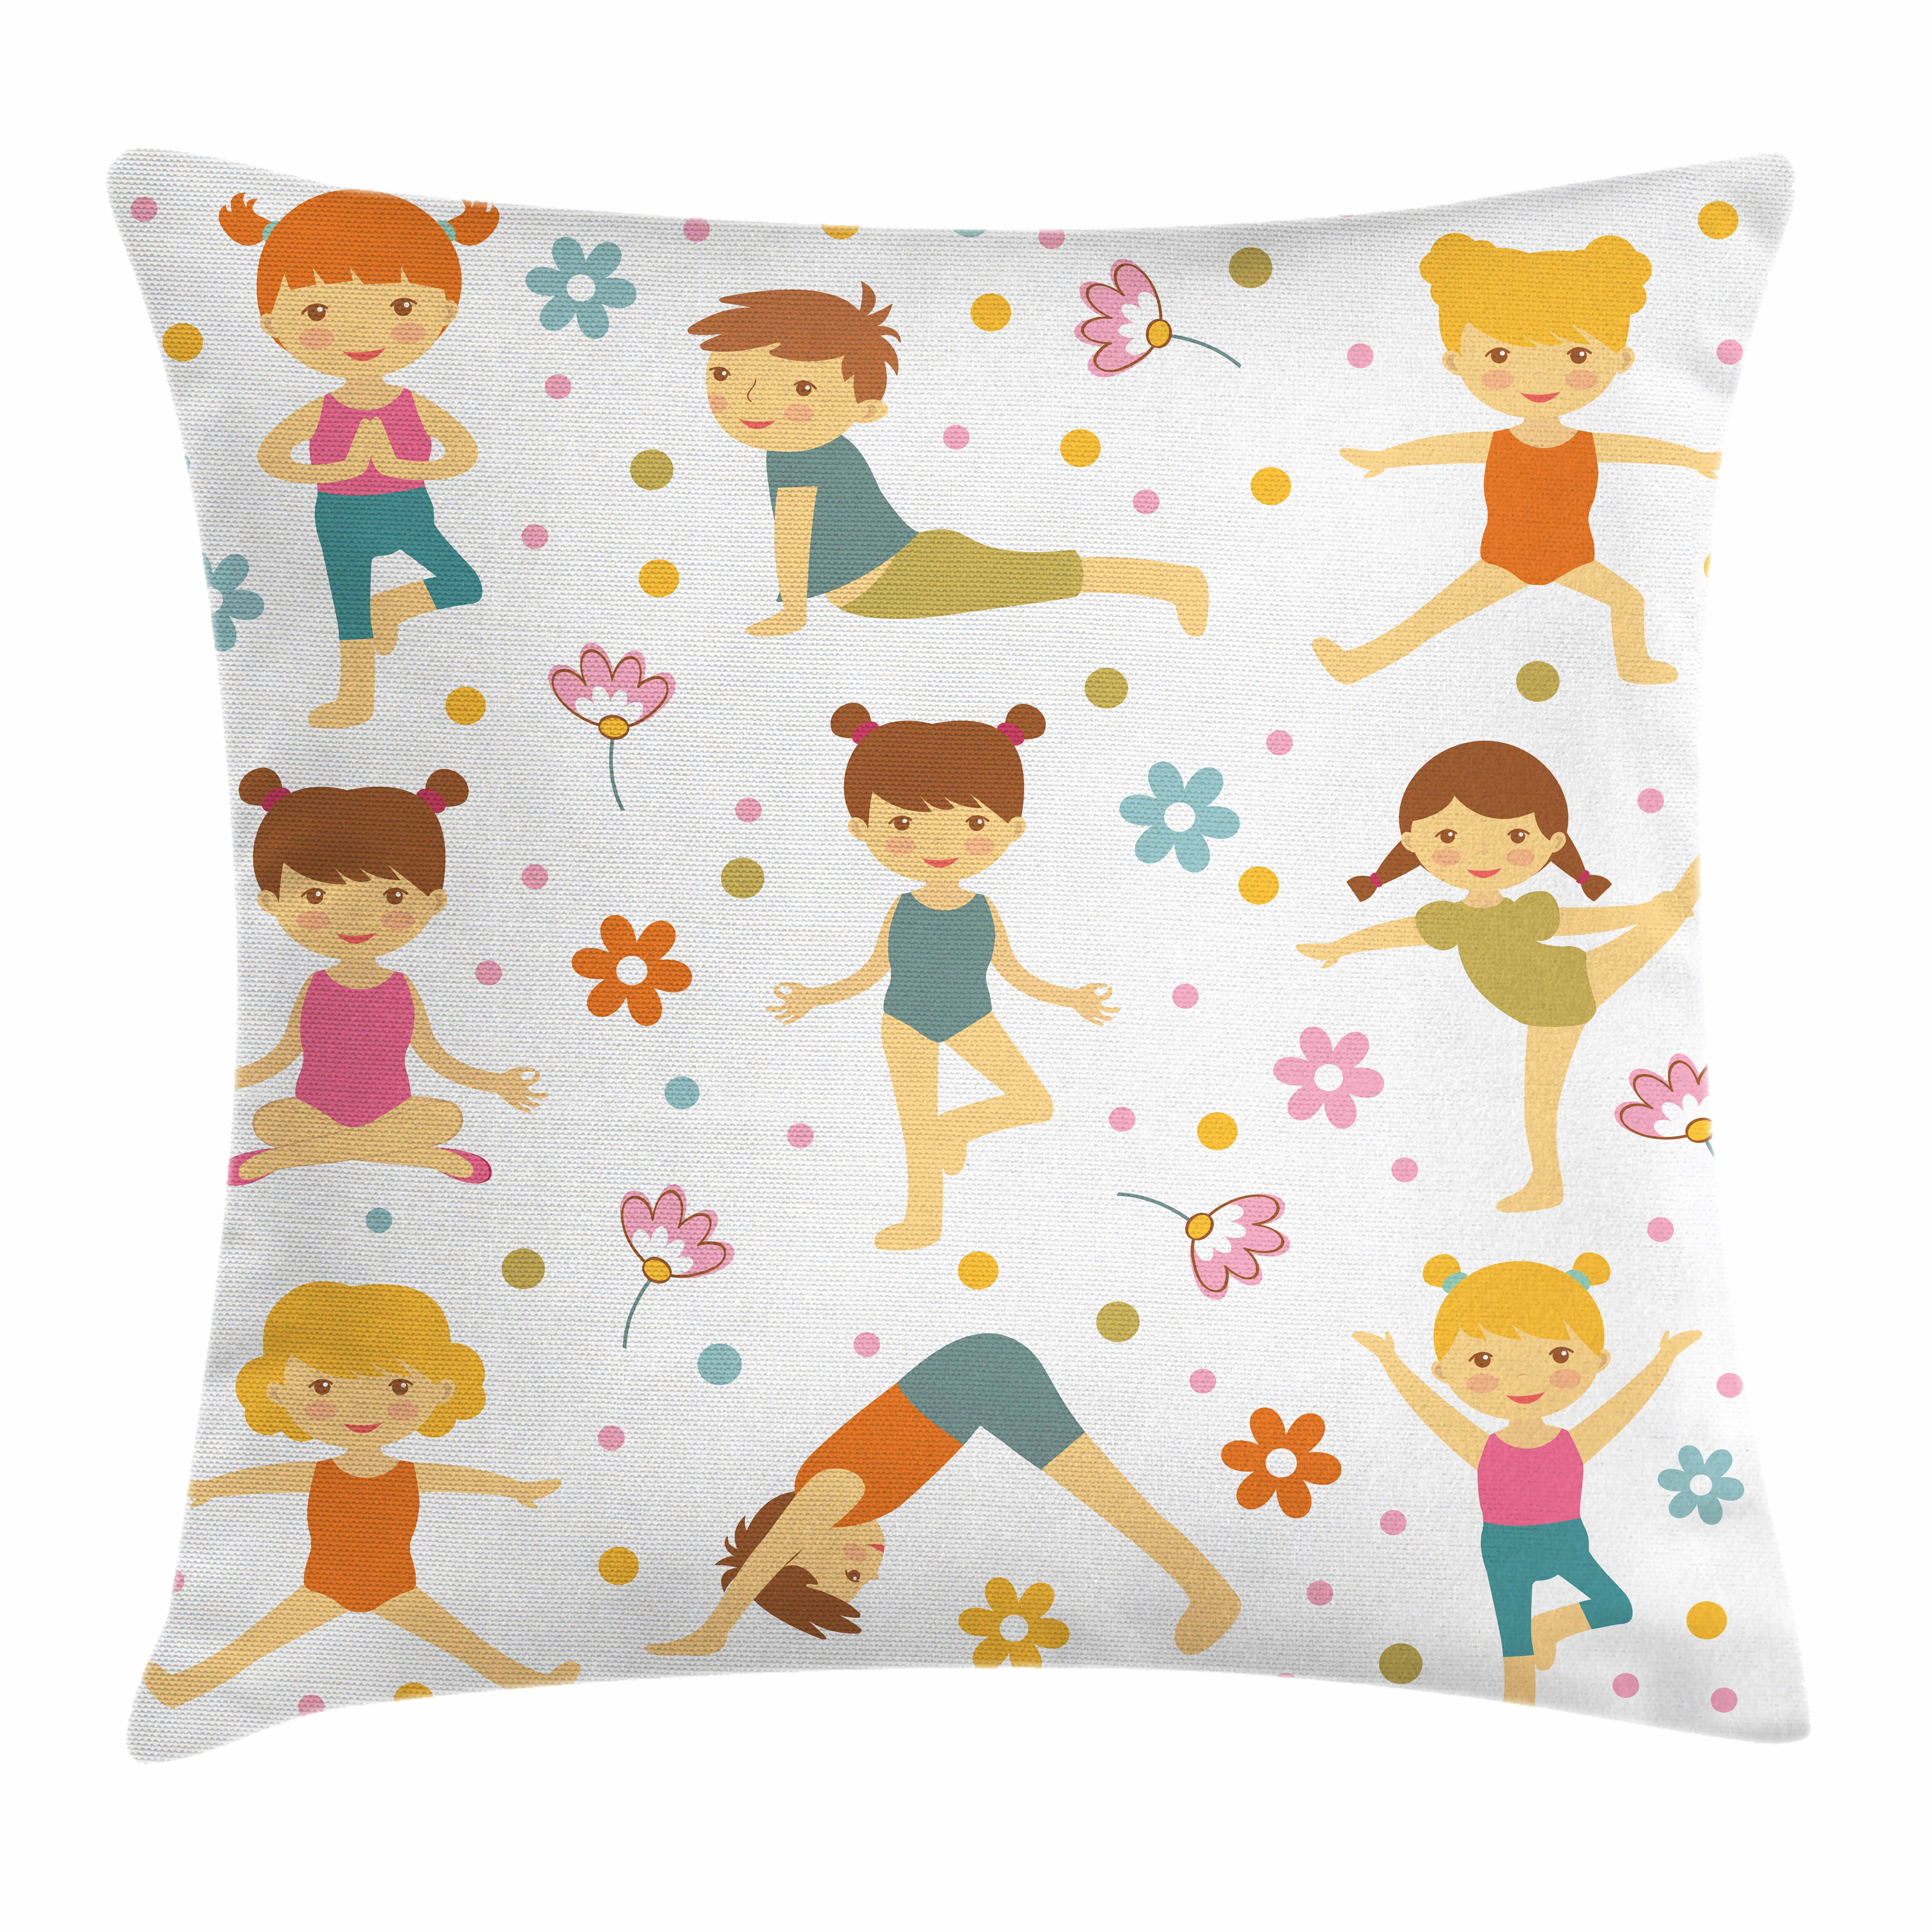 Yoga Throw Pillow Cushion Cover, Cartoon Style Exercising Kids with Colorful Daisies Healthy Active Children Stretching, Decorative Square Accent Pillow Case, 16 X 16 Inches, Multicolor, by Ambesonne